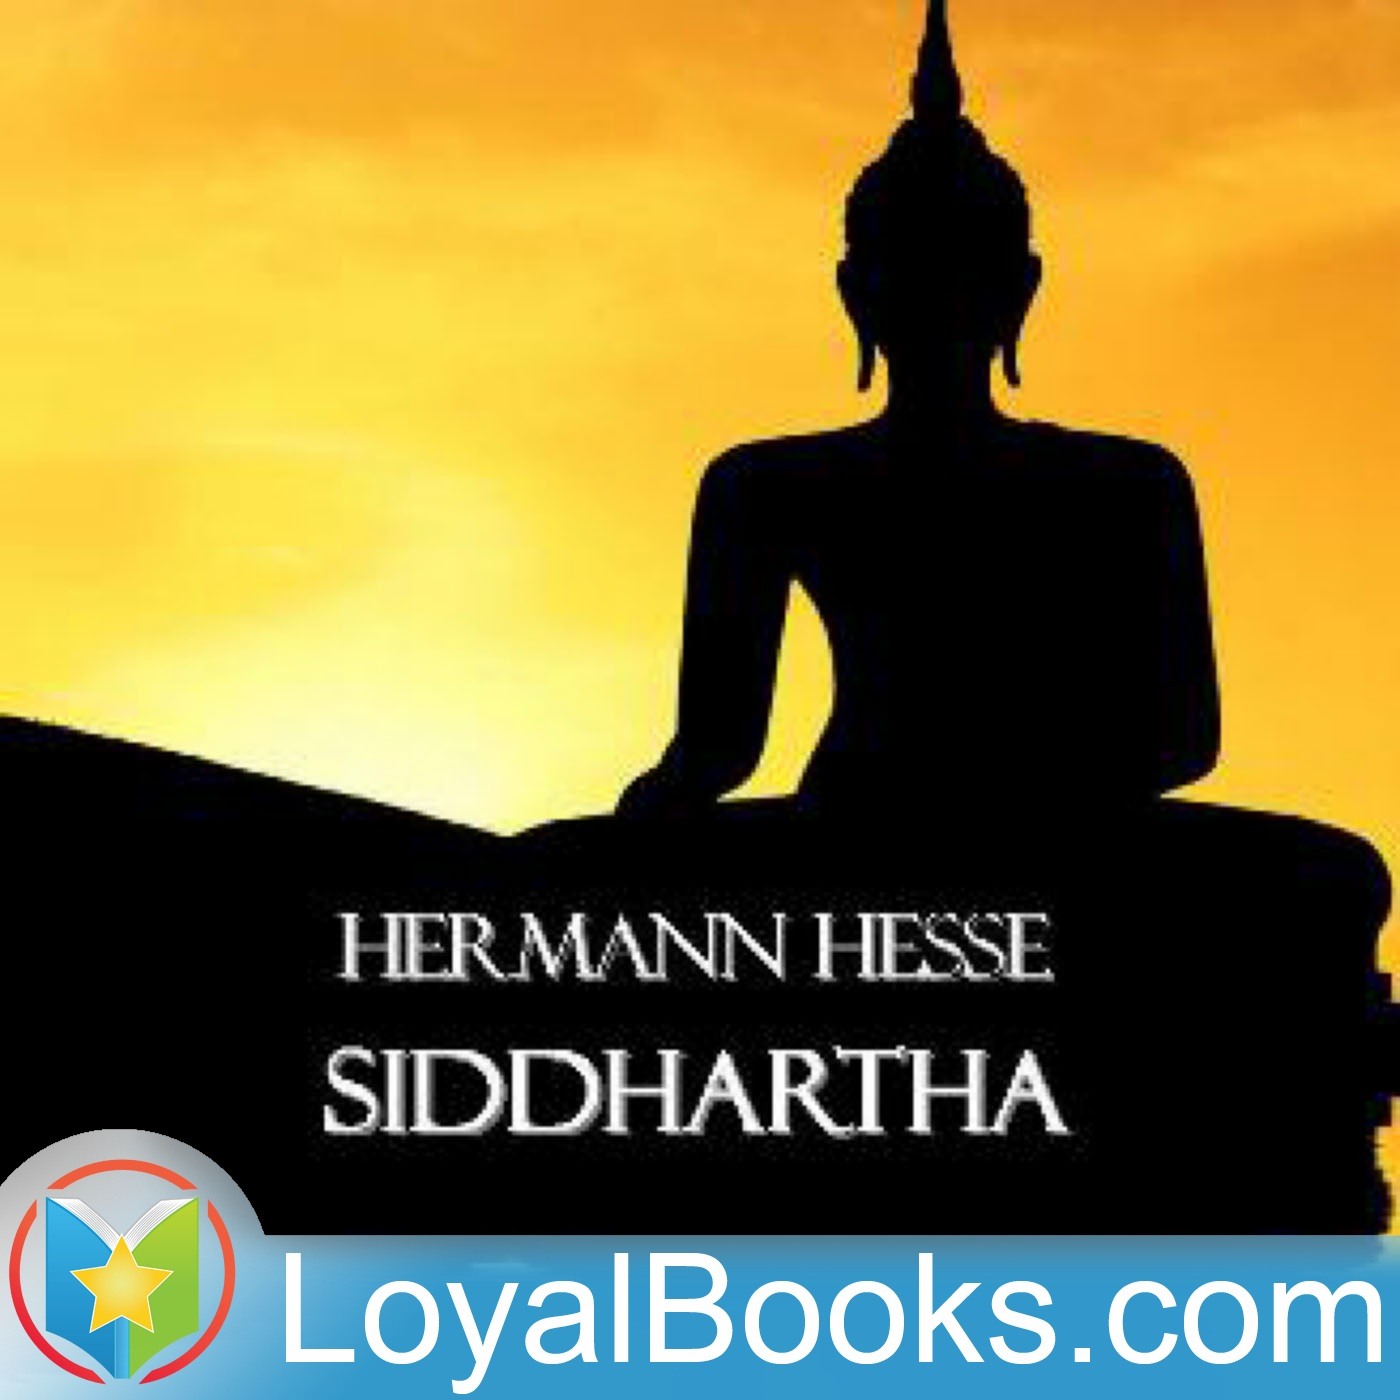 a review of siddhartha by hermann hesse Hermann hesse siddhartha plot overview and analysis written by an  experienced literary critic full study guide for this title currently under  development.